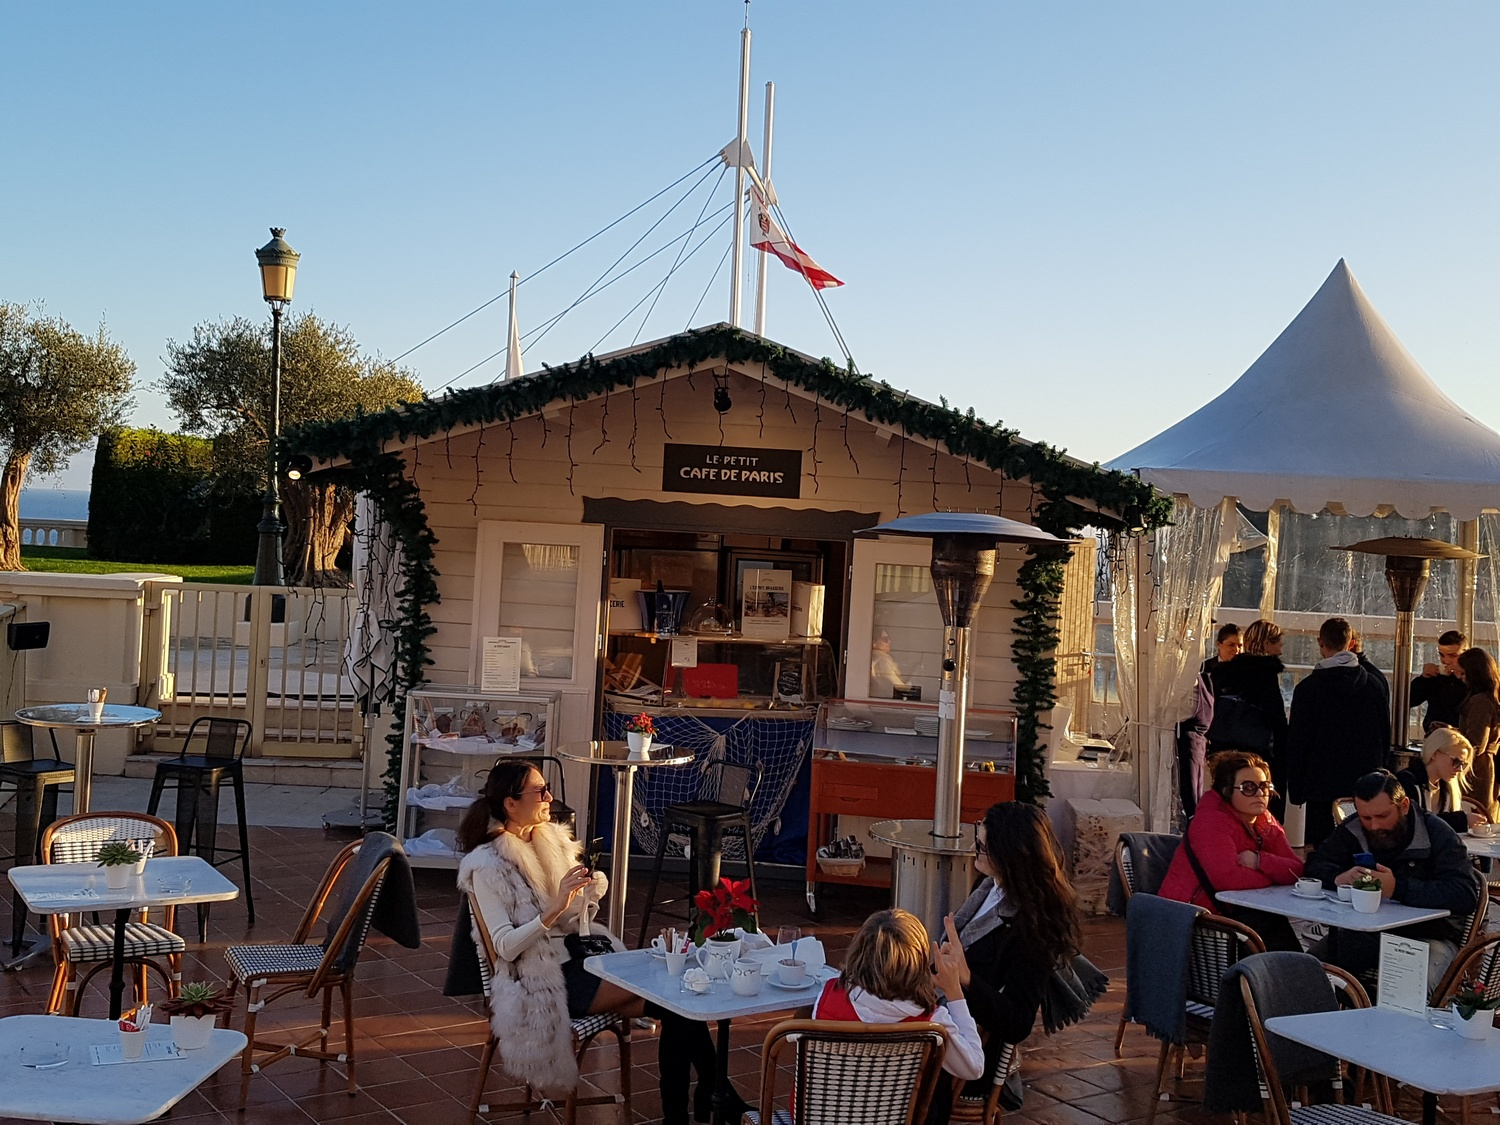 Saint-Jean-Cap-Ferrat winter 2019-2020